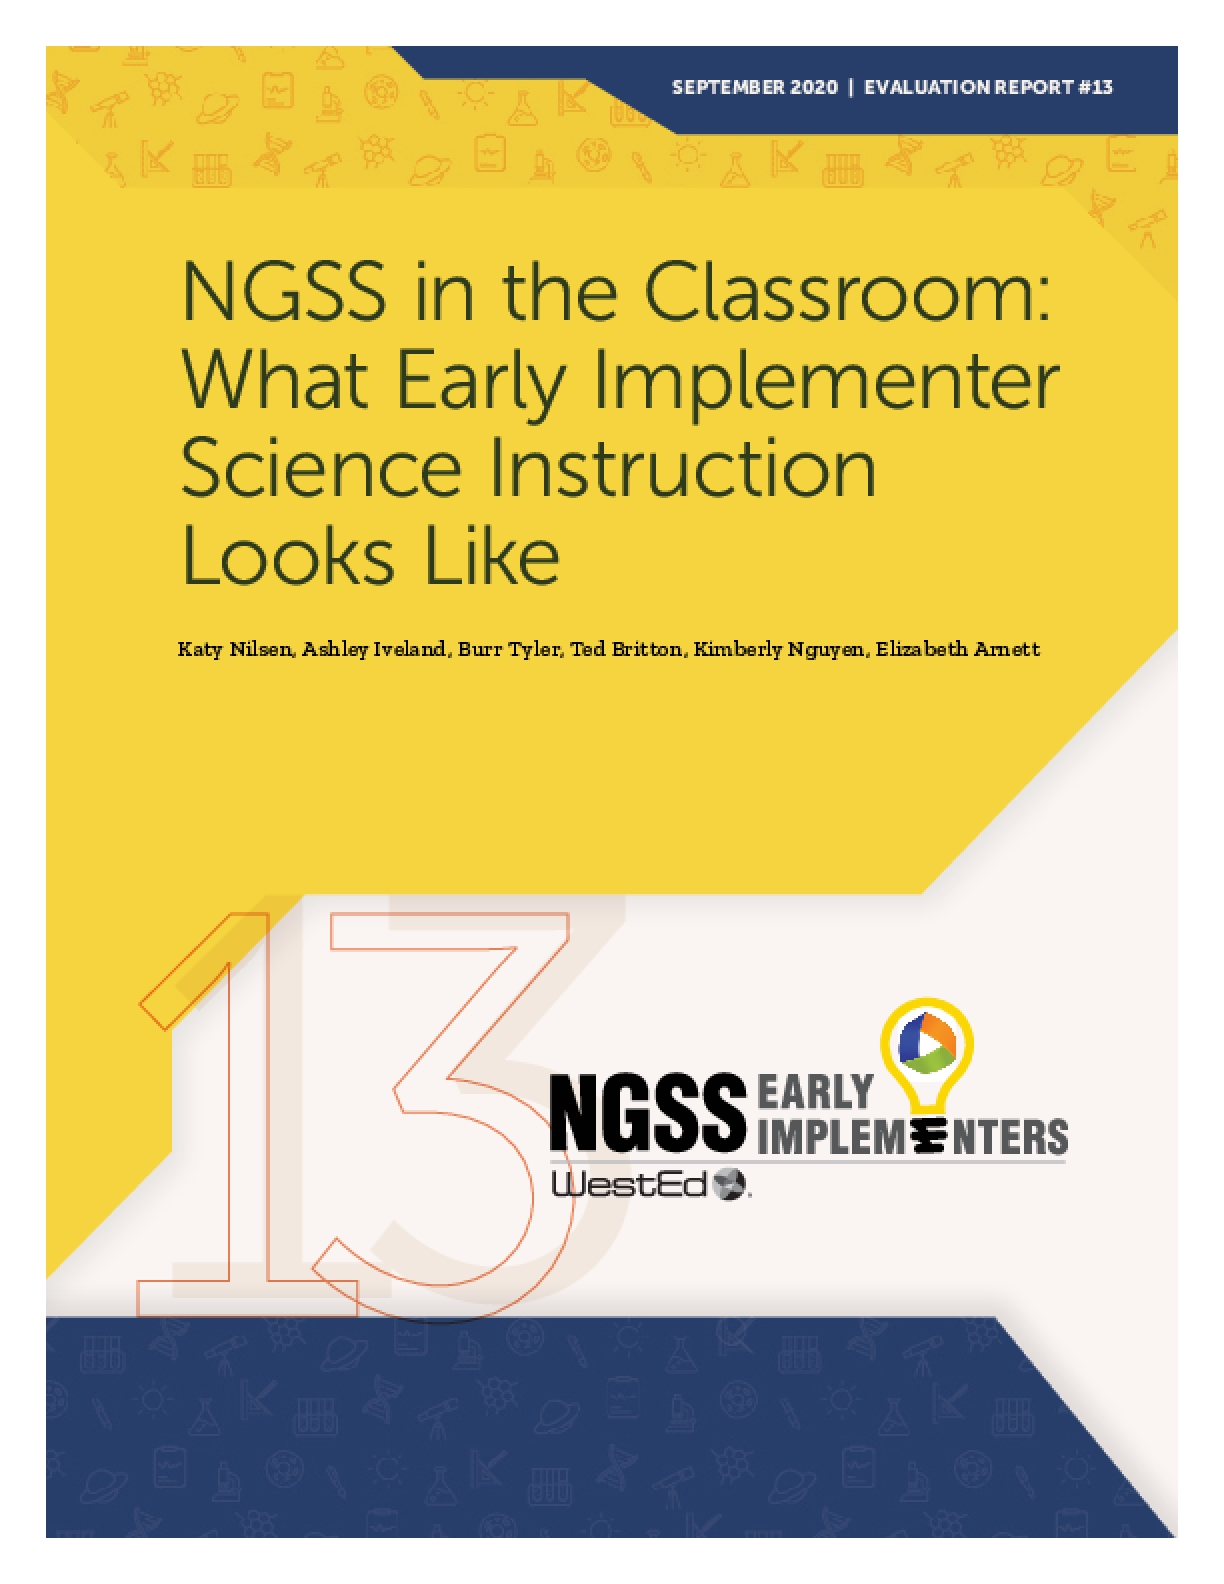 NGSS in the Classroom: What Early Implementer Science Instruction Looks Like